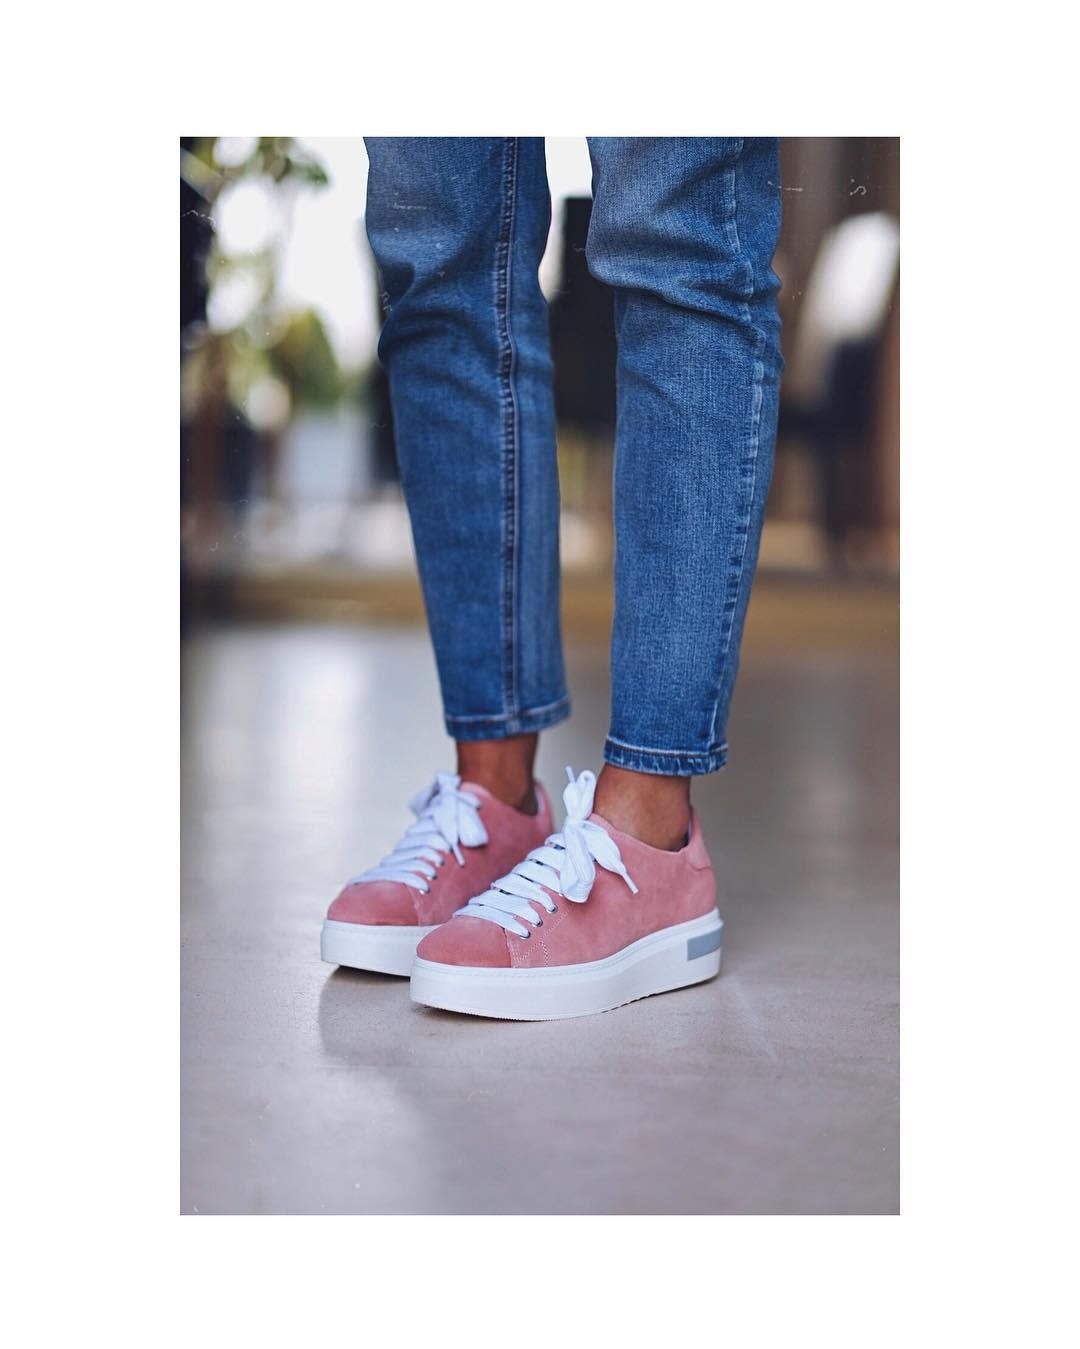 Baskets rose femme Nouvelle collection Factory Store